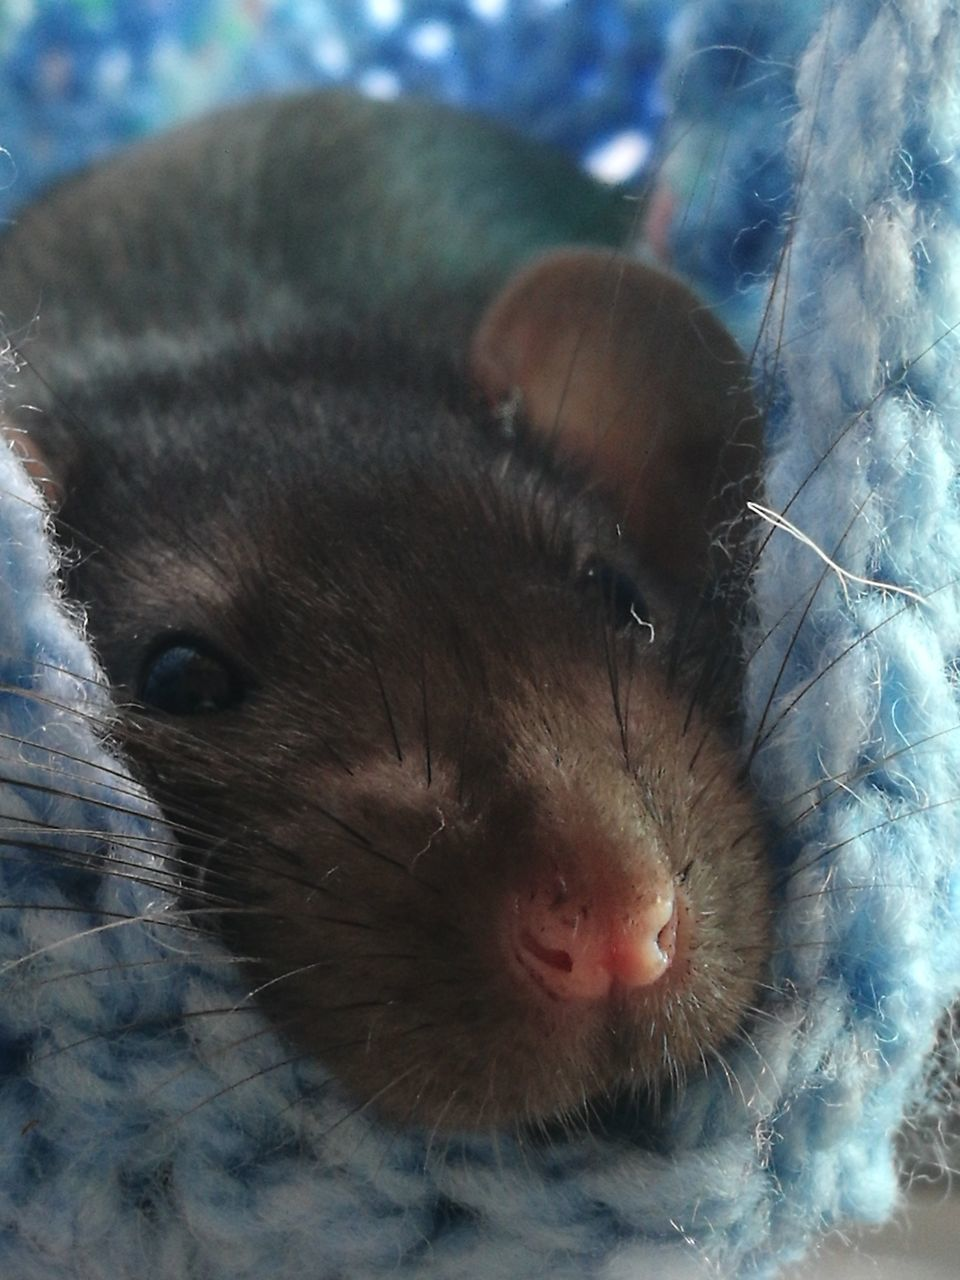 mammal, animal themes, one animal, close-up, pets, indoors, domestic animals, no people, whisker, day